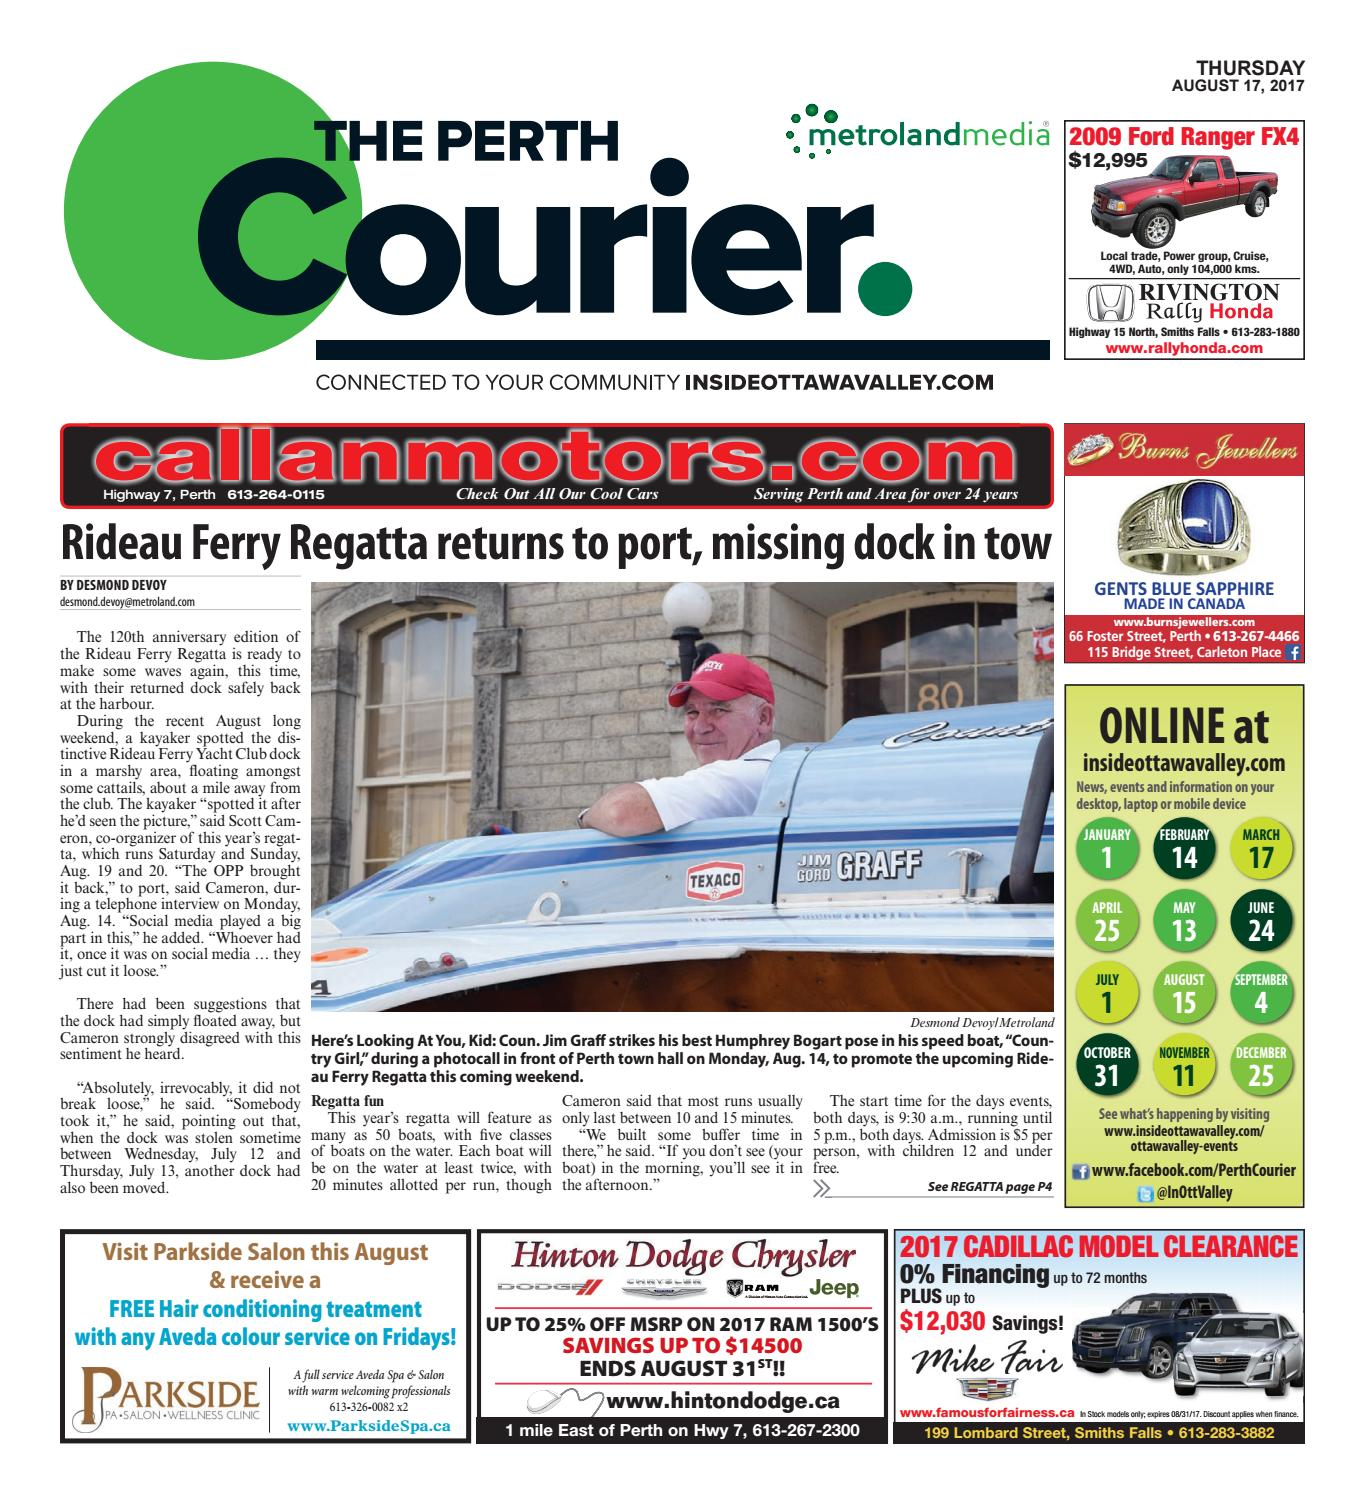 Umbrella Stroller Kijiji Mississauga Perth081717 By Metroland East The Perth Courier Issuu